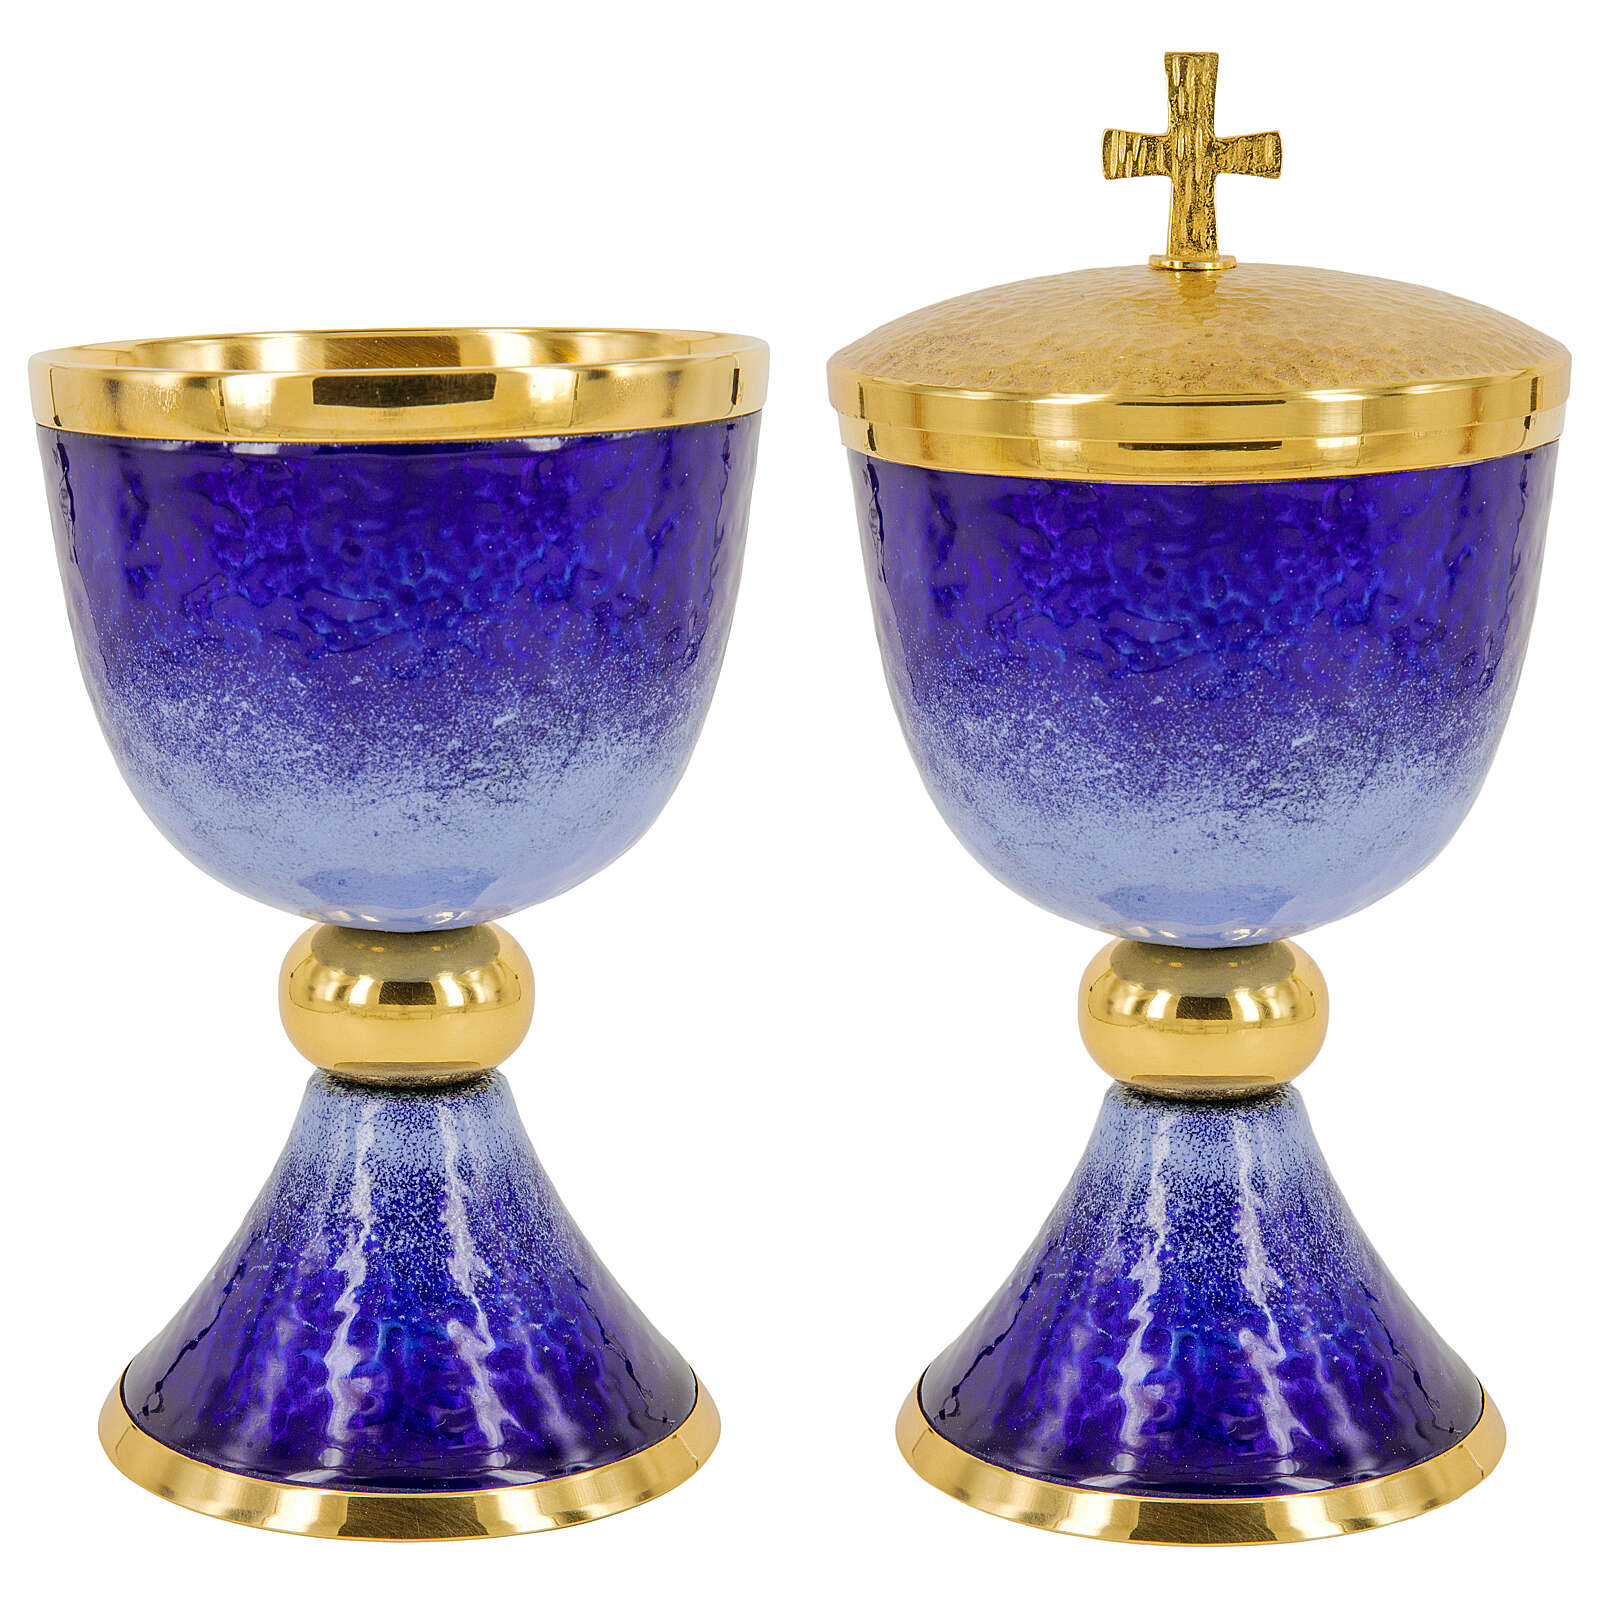 Chalice ciborium paten blue and light blue enamel and gold plated brass 4